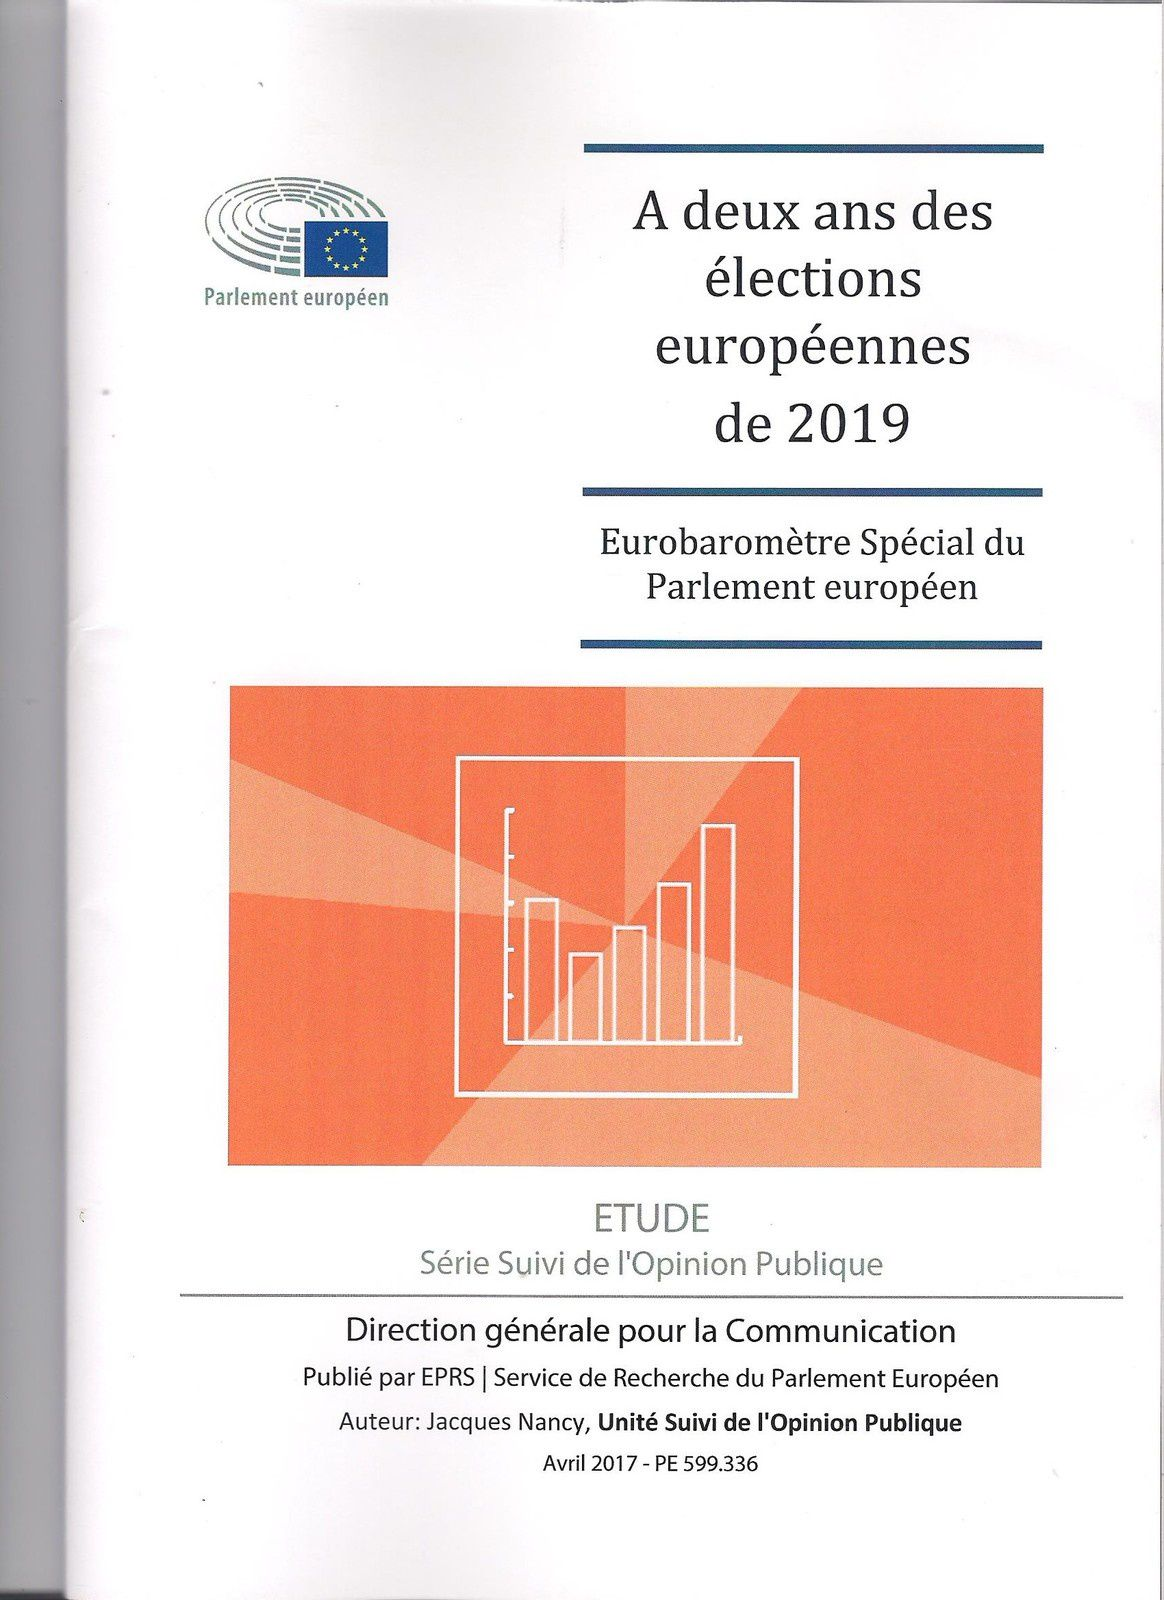 - Projet définitif d'ordre du Jour (18 pages)  - Etude :A deux ans des élections européennes de 2019 - Eurobaromètre spécial du parlement européen - Direction générale pour la Communication - 100 pages  - Openess of public procurement markets in key third countries - DG for External policies - Policy Department - 91 pages  - Registration of persons on board passenger ships - 1 page  - Safety rules and standars for passengers ships - 1 page  - Study : Transformation of China and global economic interdependance - 53 pages  - Study : The future of EU - ASEAN relations - 38 pages  - India and prospects for closer EU tiers - 8 pages  - Youth Challenges and opportunities in the western Balkans - 8 pages  - European Atomic Energy Community (Euratom) - Structures and tools - 8 pages  - The EU olive and olive oil sector. Main features, challenges and prospects - 12 pages  - EU strategy on cooperative intellogent transport system - 8 pages  - Reflection paper on harnessing globalisation - 7 pages